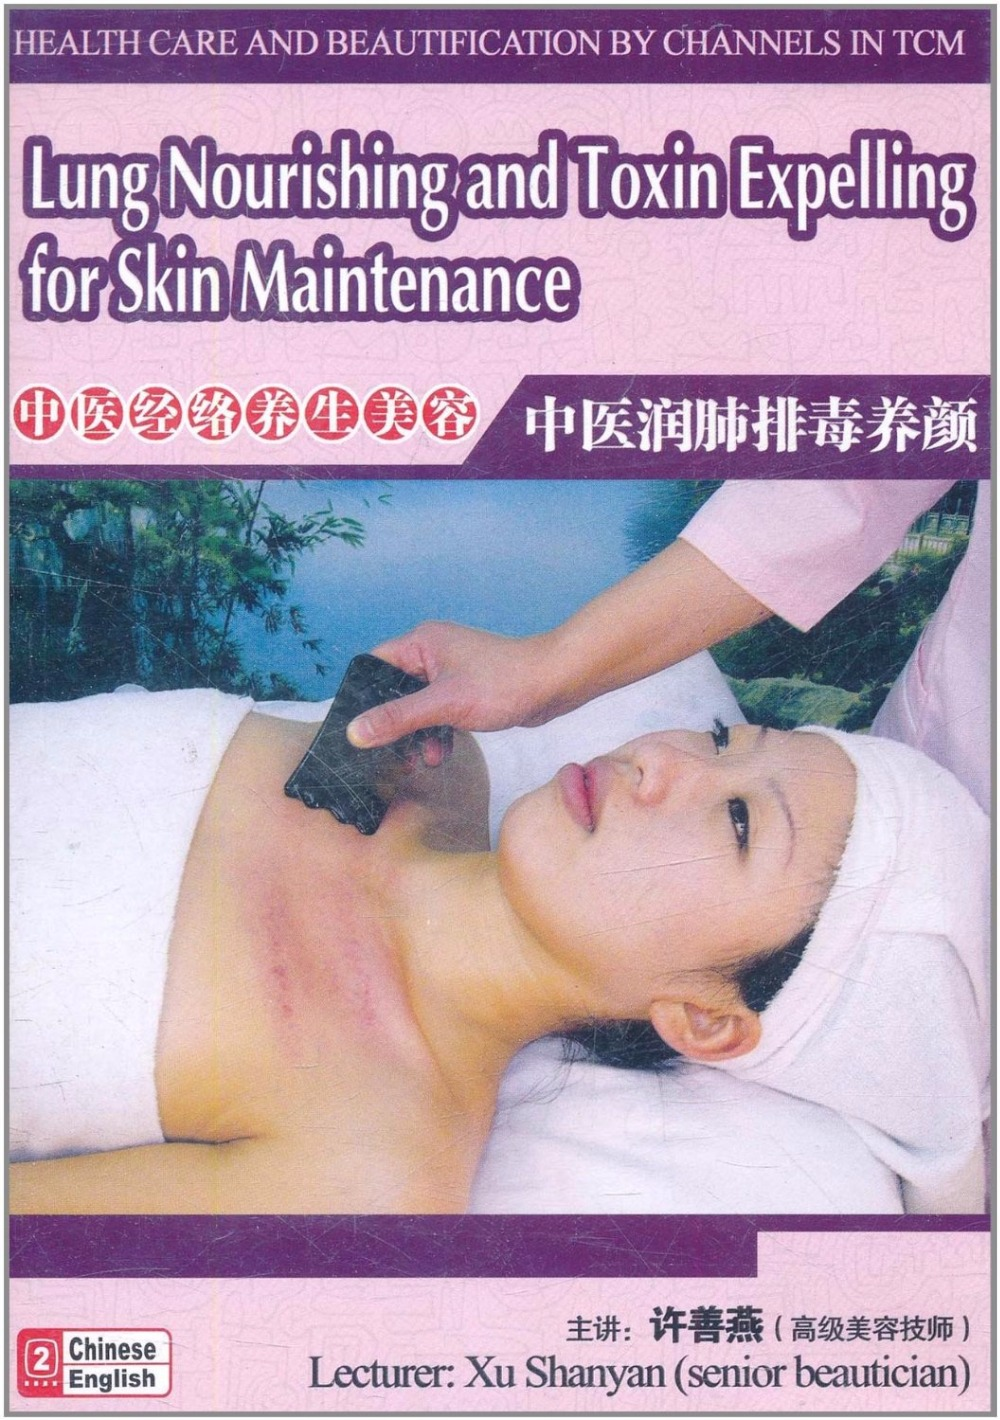 HEALTH CARE AND BEAUTIFICATION BY CHANNELS IN TCM Lung Nourishing and Toxin Expelling for Skin Maintenance DVD(China)